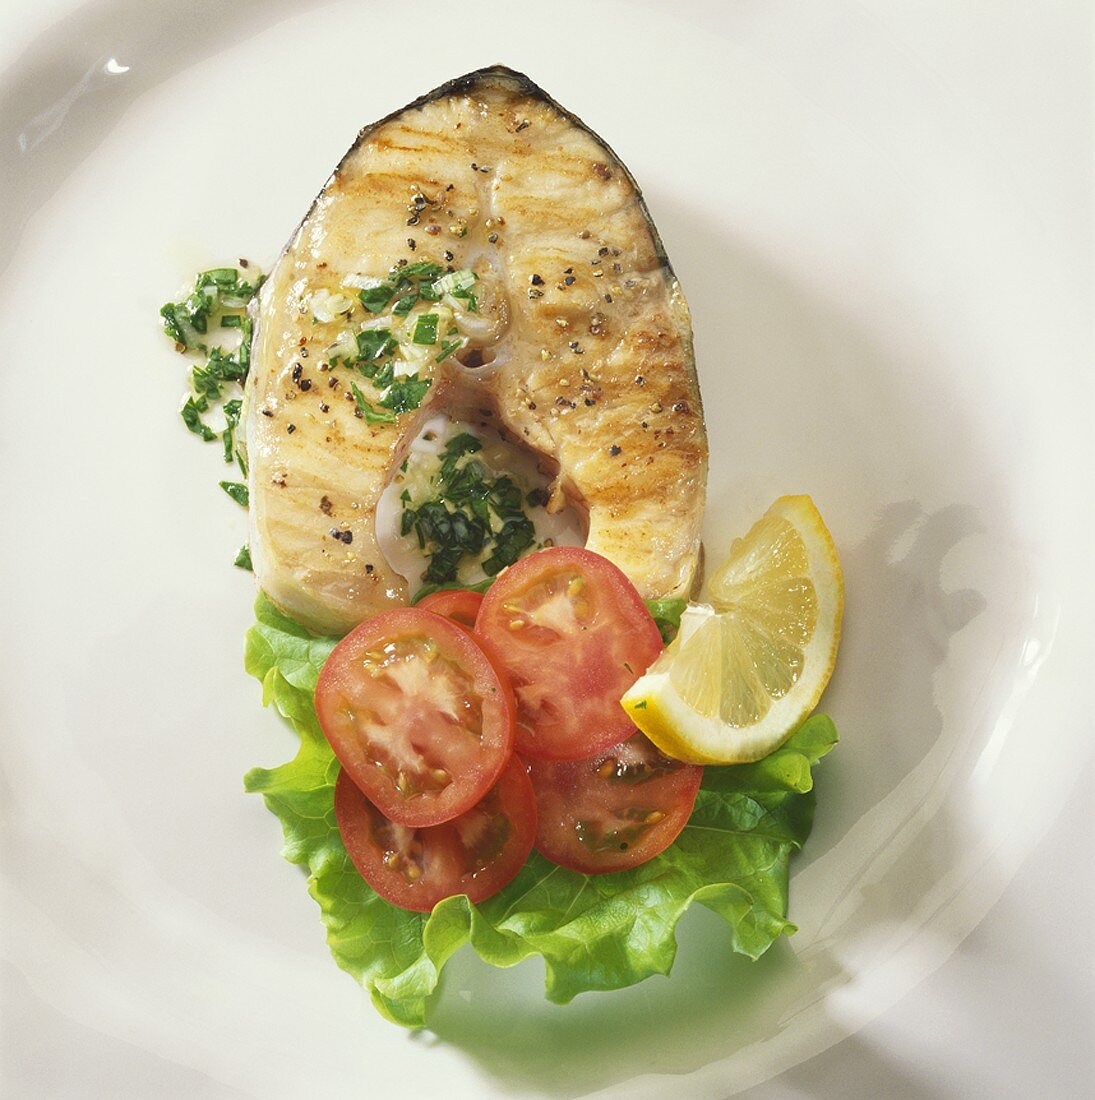 Grilled fish cutlet (sturgeon) with salad